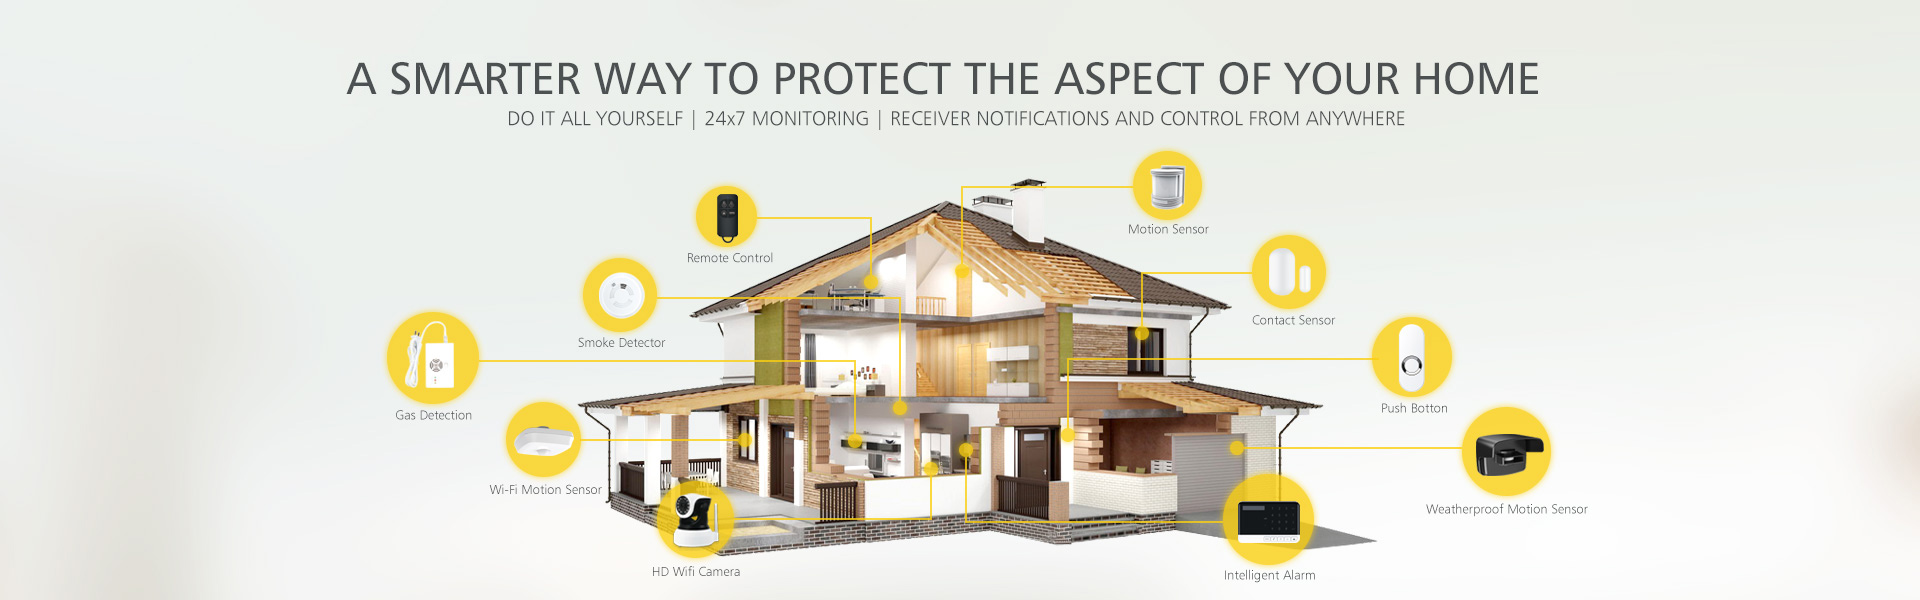 A SMRTER WAY TO PROTECT THE ASPECT OF YOUR HOME